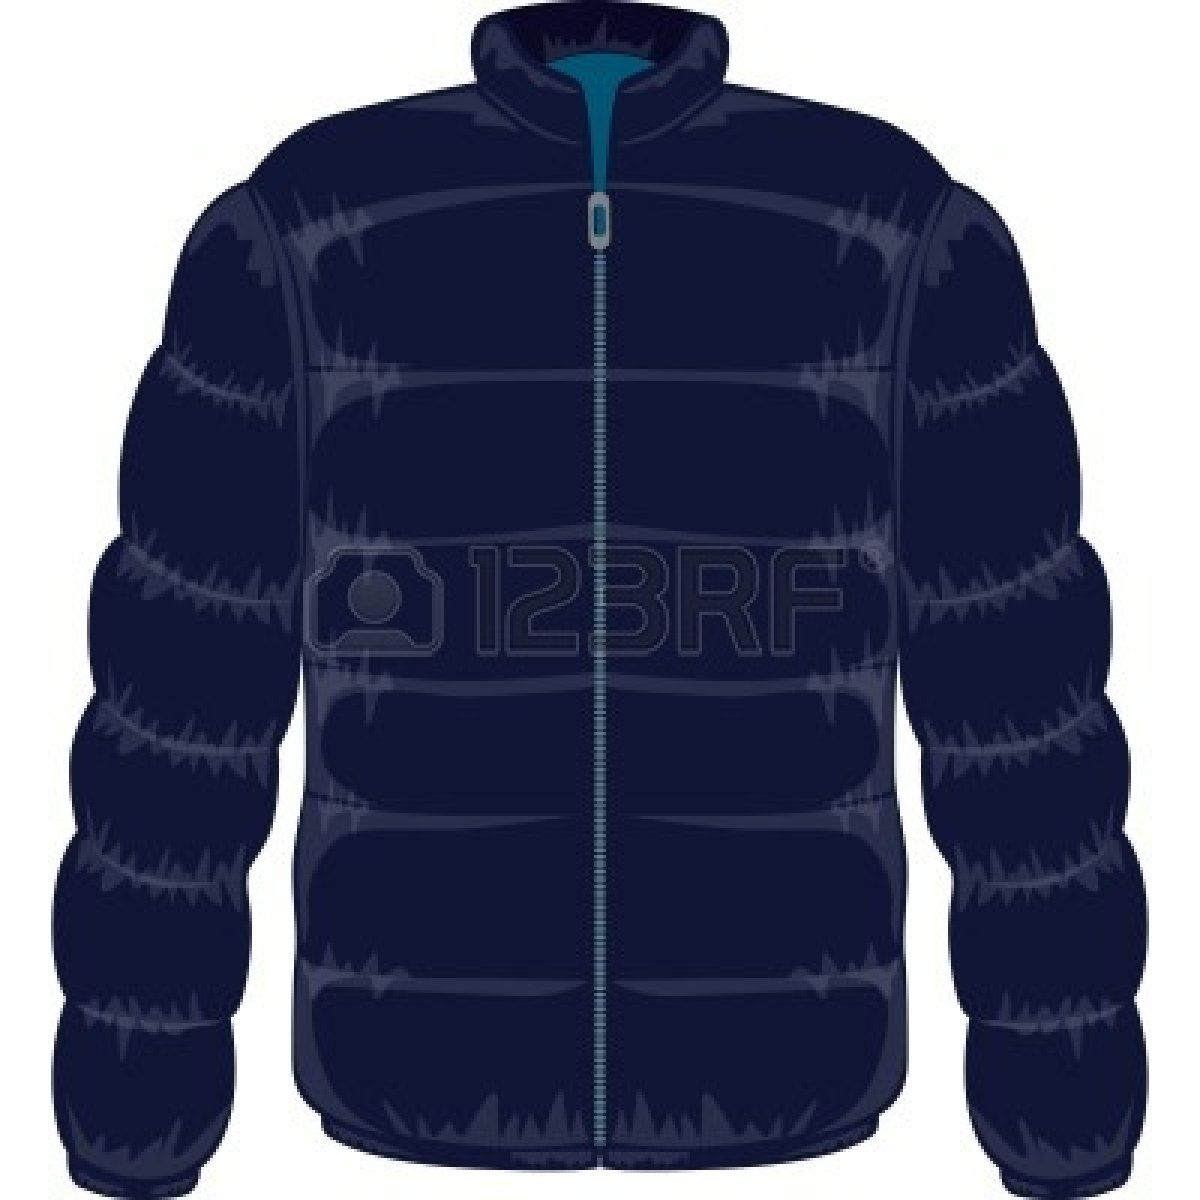 Sweater Clothing Clip Art Jacket clipart